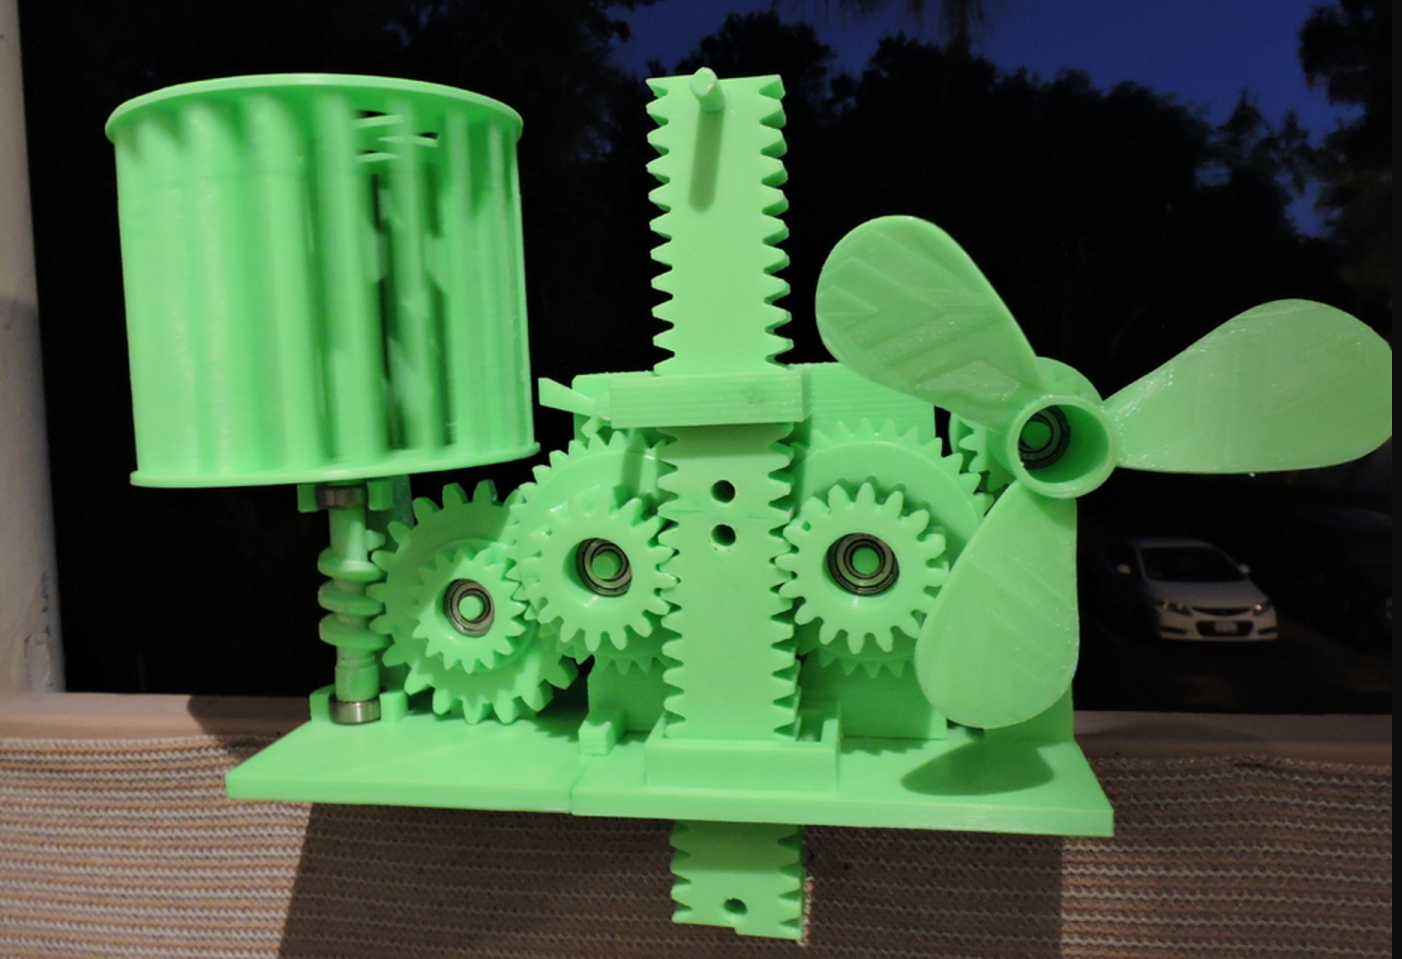 This Cool 3D Printed Project Stores Wind Energy as Gravity